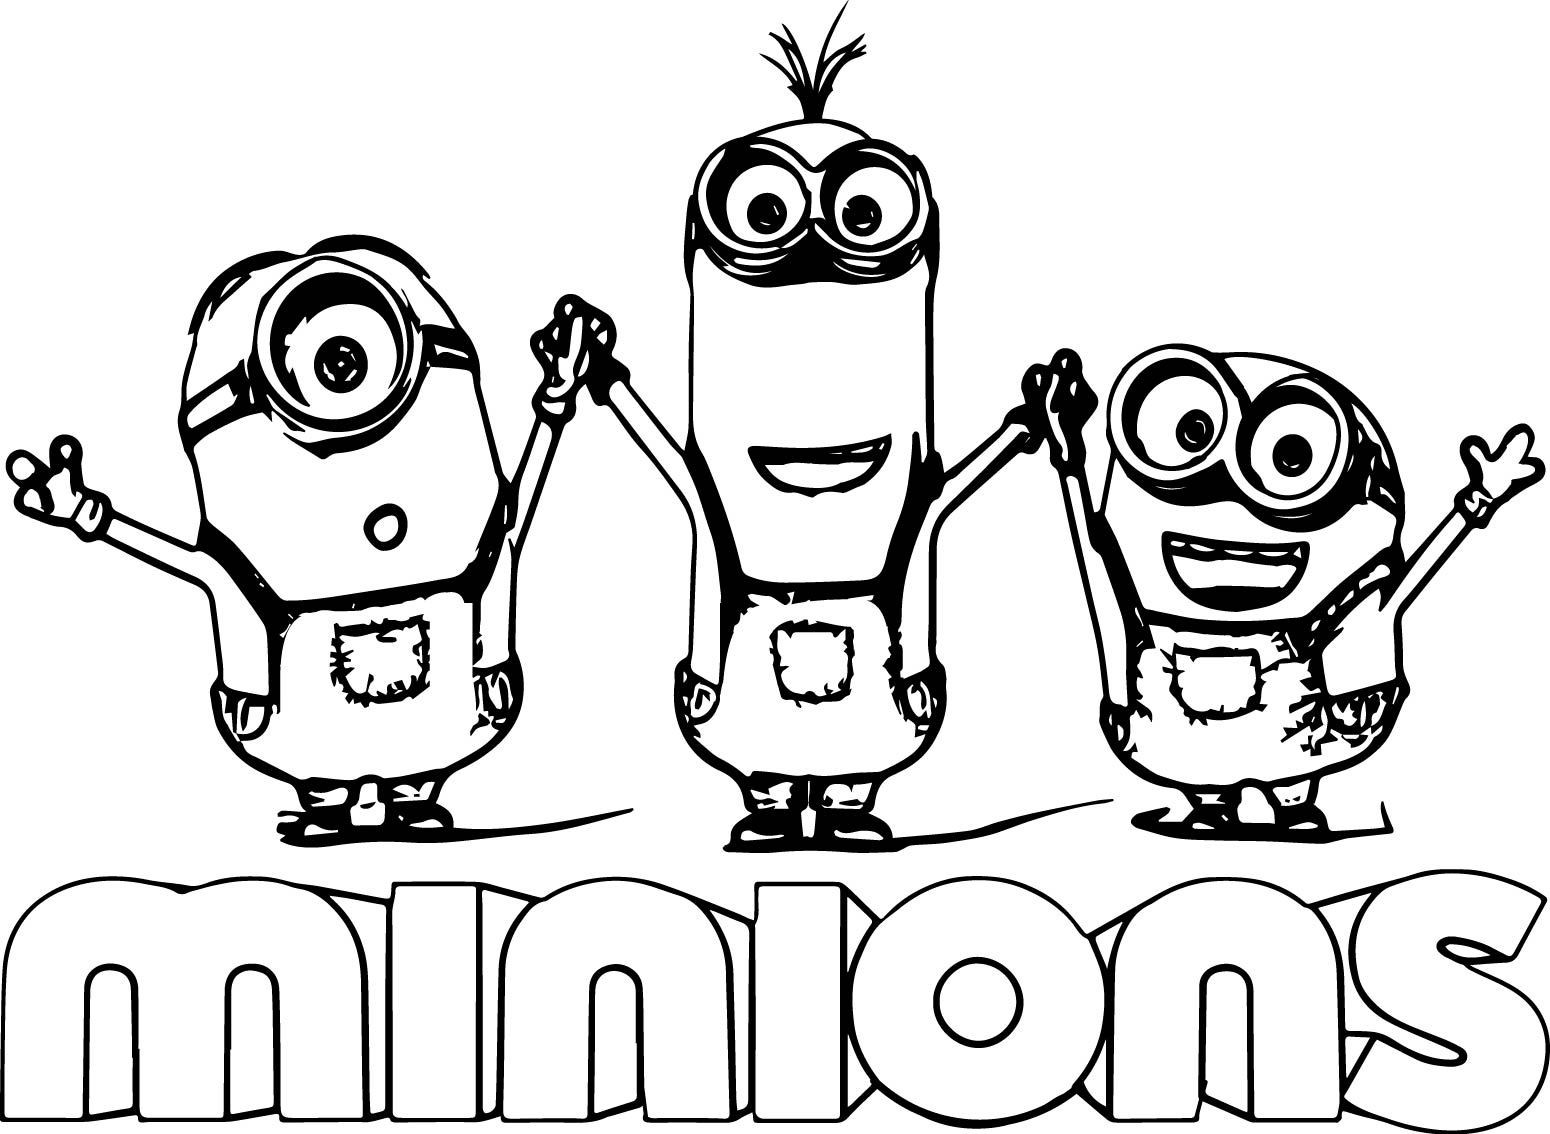 1550x1134 Printable Minion Coloring Pages With Wallpapers Laptop Brilliant